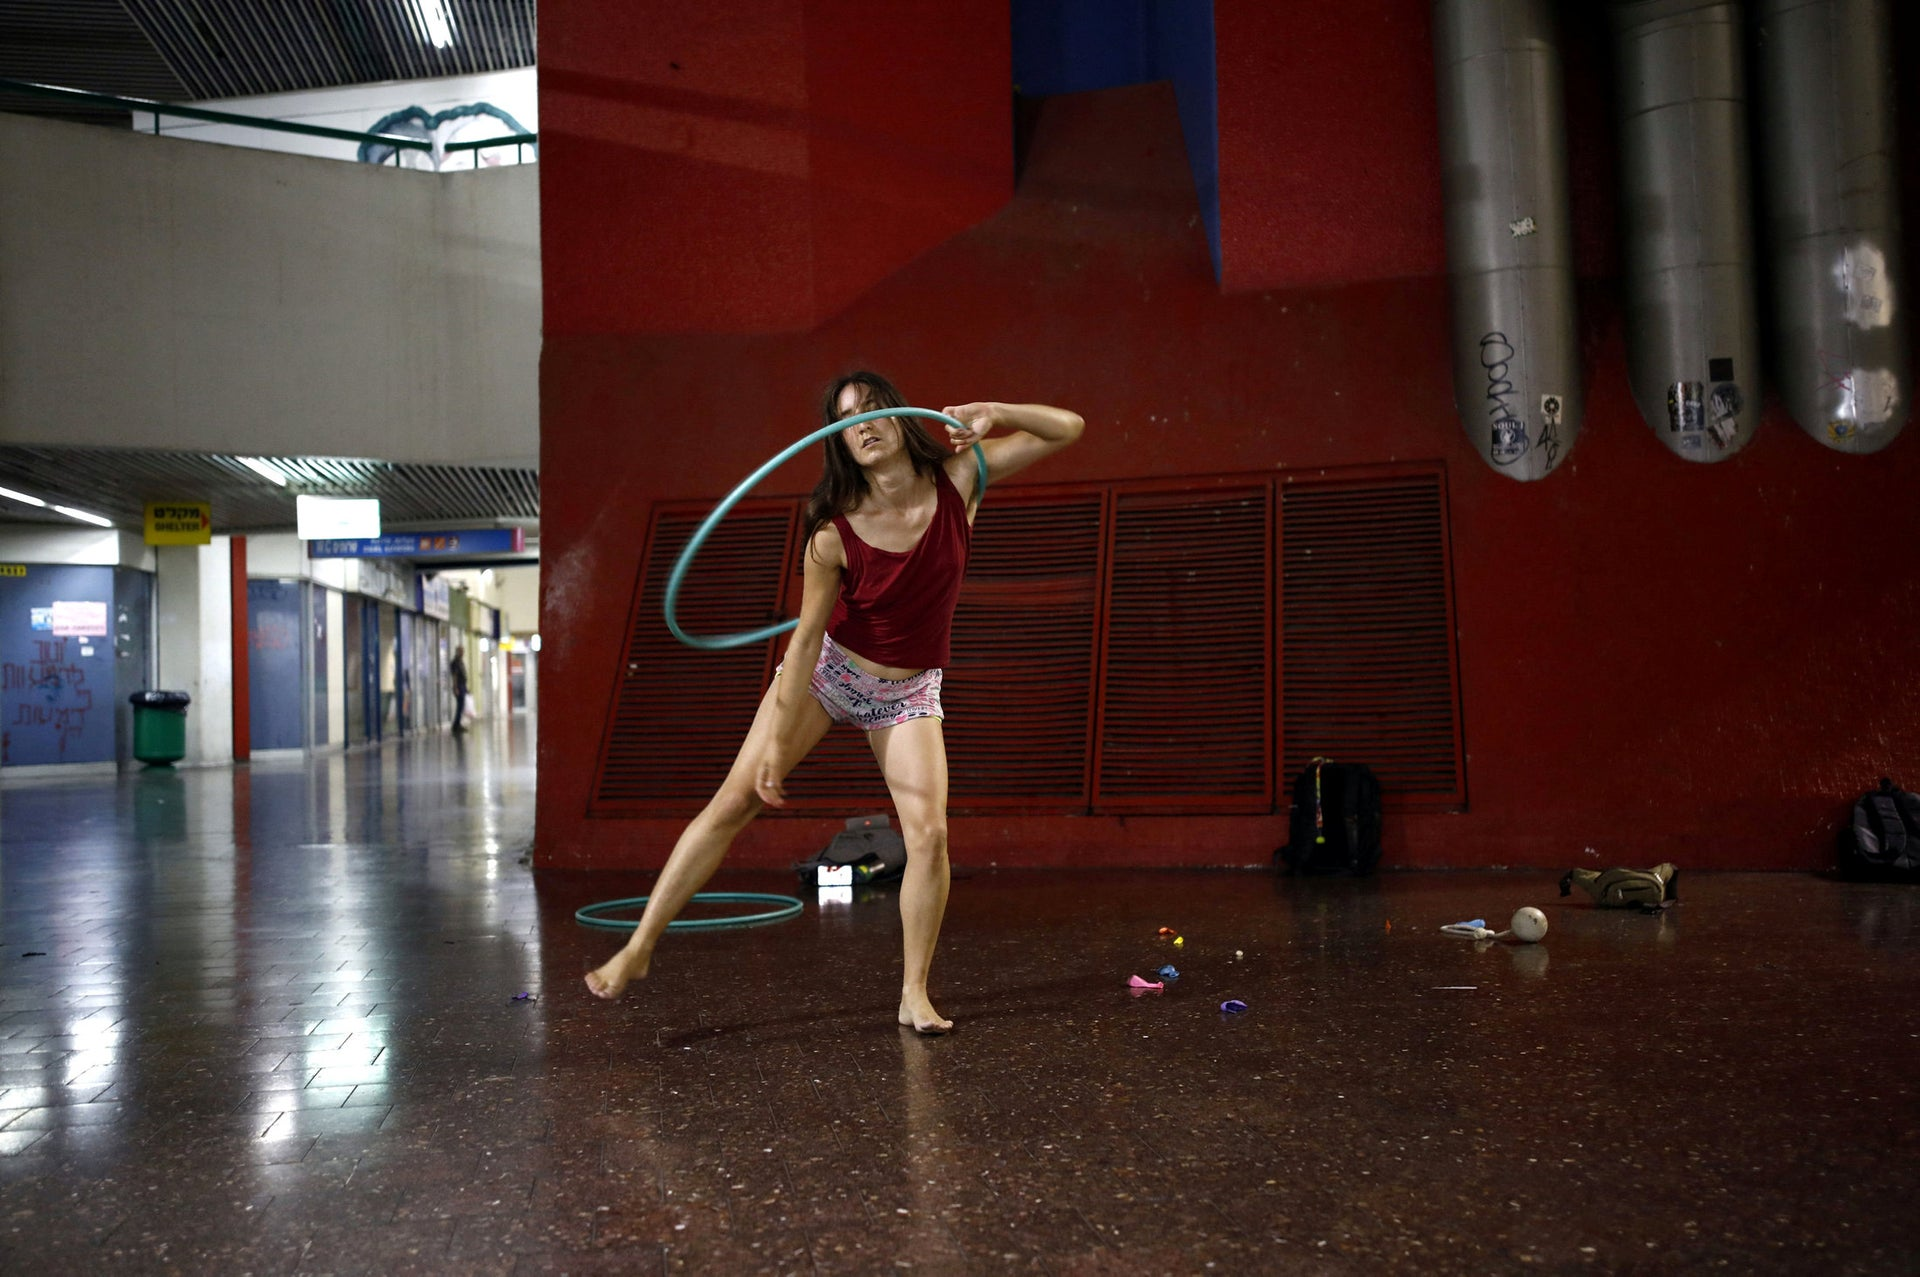 Pinto practices her acrobatics skills during a weekly informal circus community meeting at the Central Bus Station.